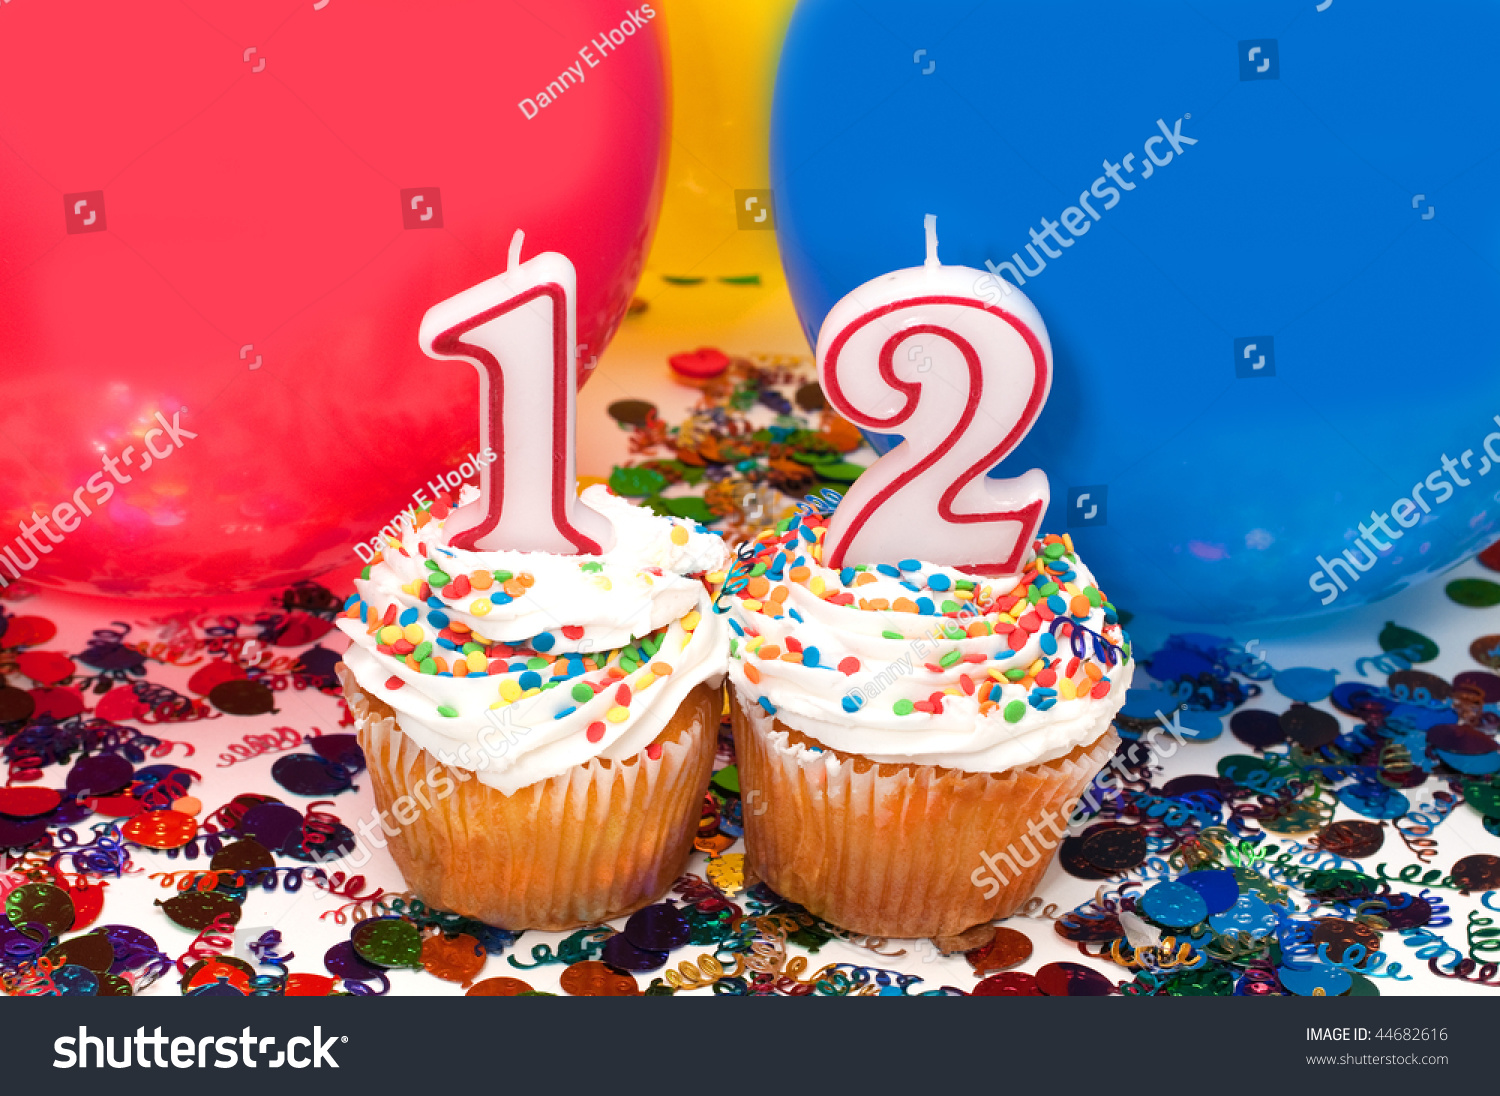 Celebration With Balloons Confetti Cupcake And Number